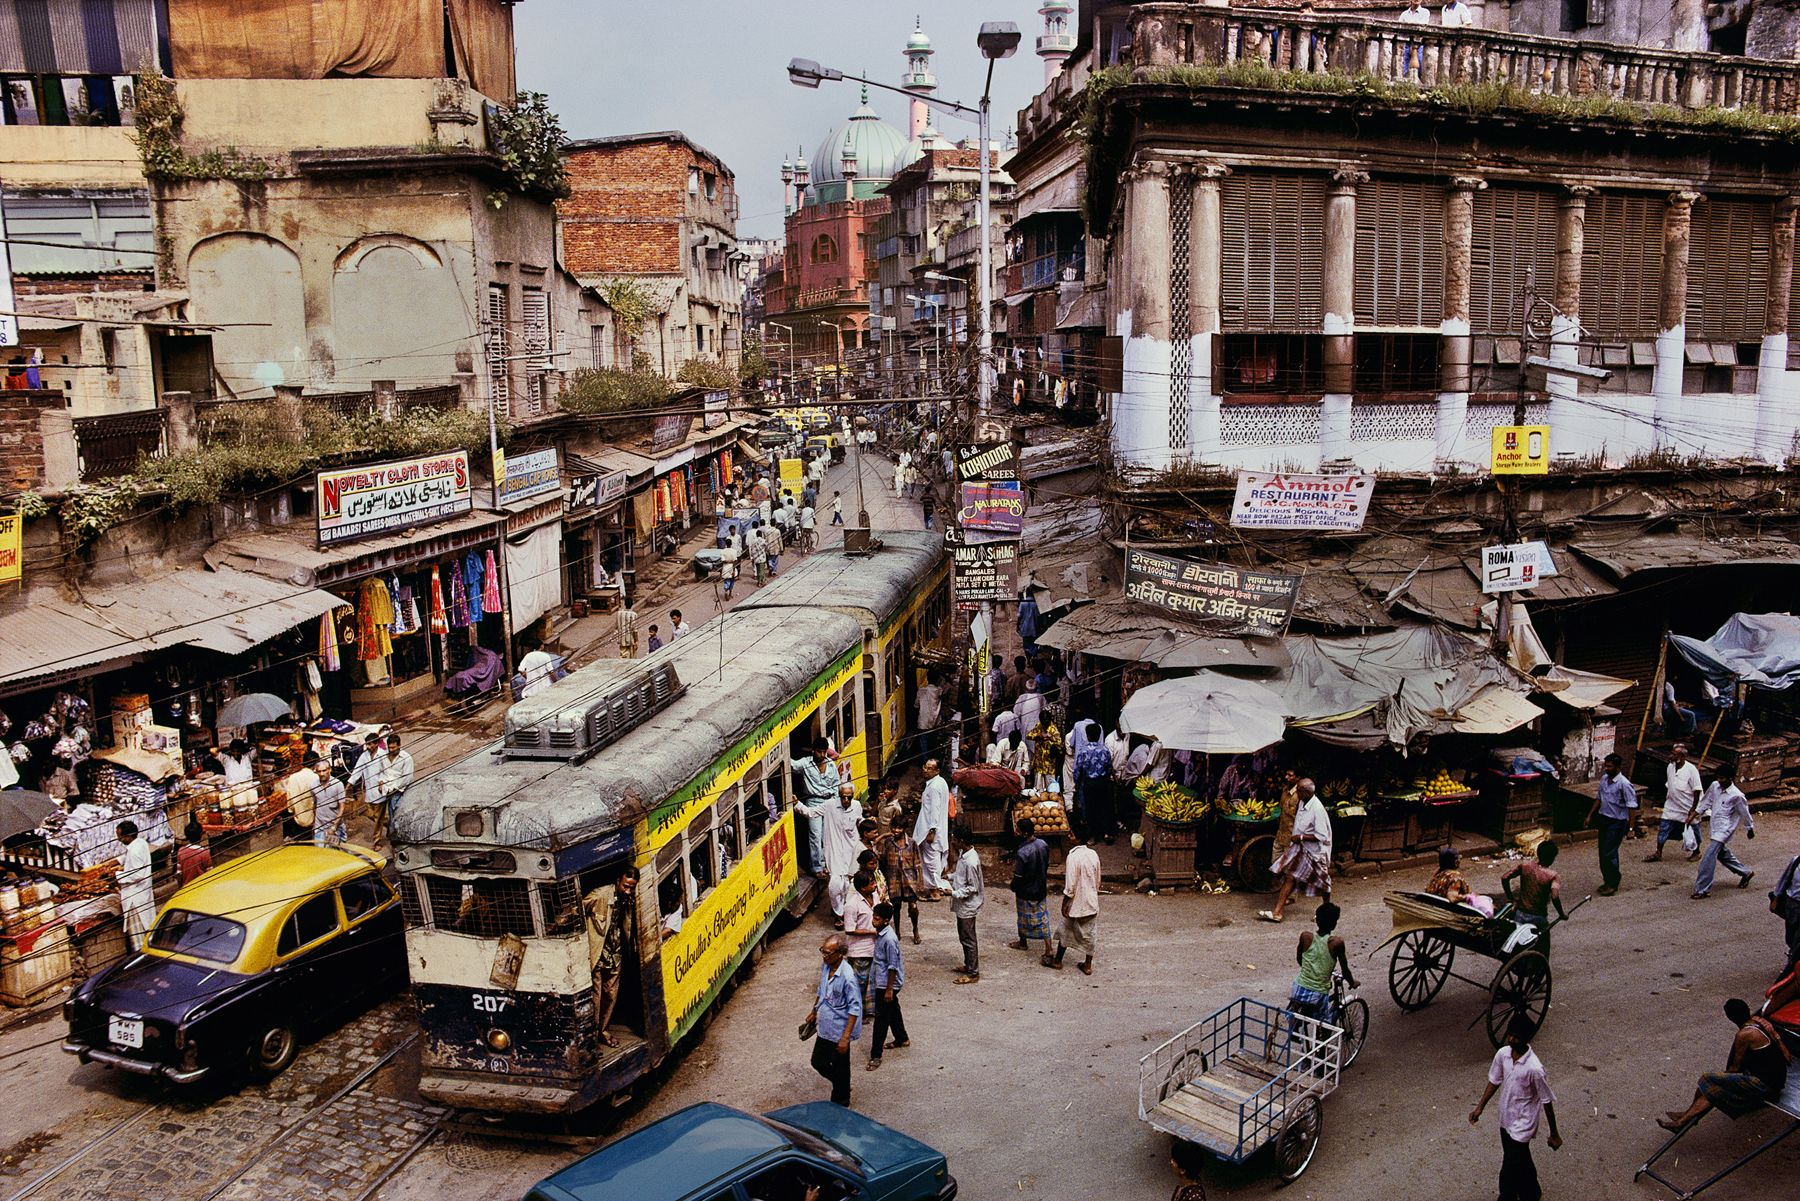 Train, Calcutta | INDIA-10206 / Photography by Steve McCurry / Here you can download Steve's FREE PDF Catalog and order PRINTS /   http://stevemccurry.com/sites/default/files/Fine%20Art%20Print%20Catalog%20Spring-Summer%202012.pdf